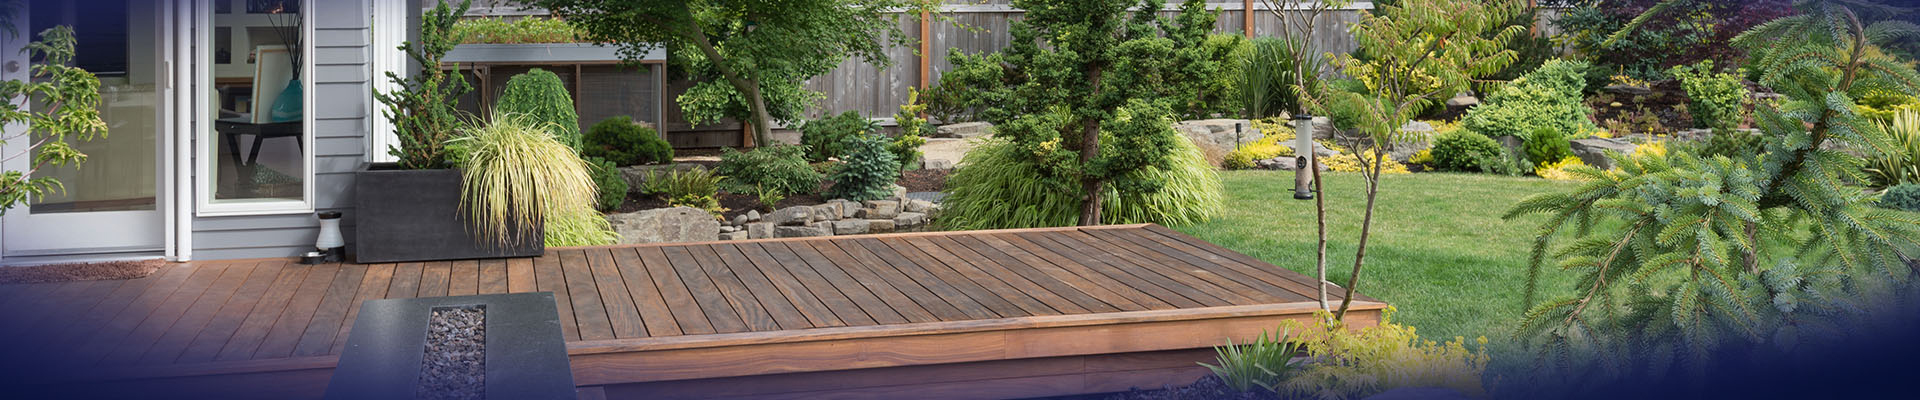 hallmark homes landscaping header image - Landscaping - It's Integral to Outdoor Liveability